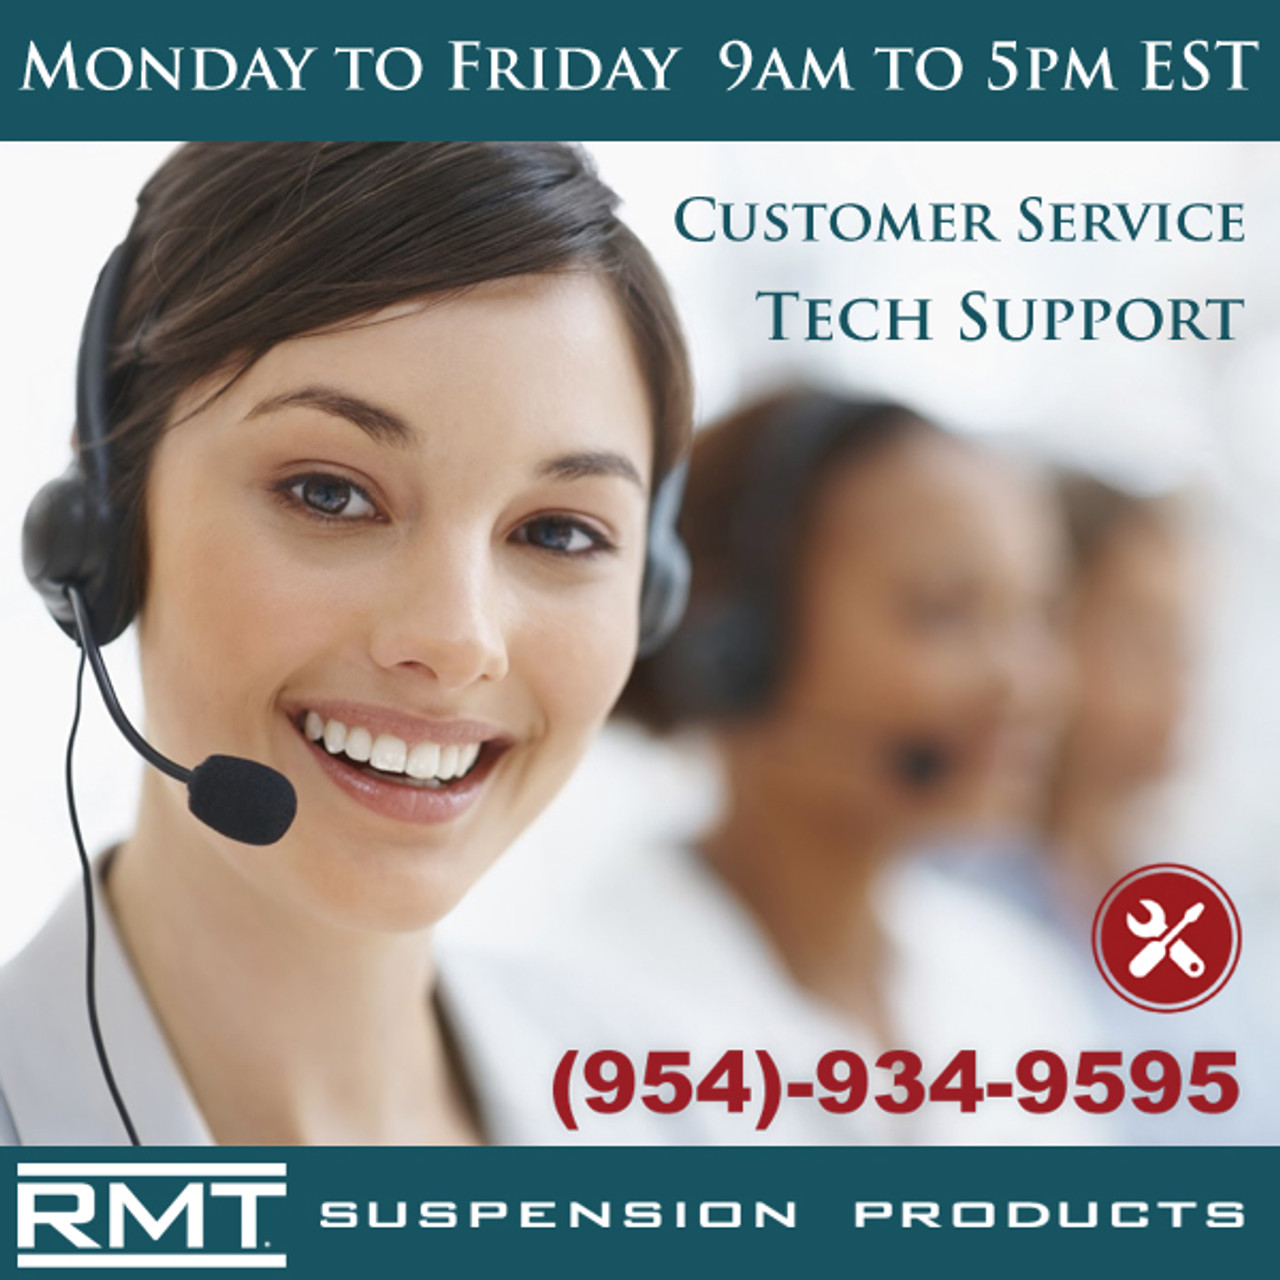 For Customer Service and Tech Support Please call us at (954)-934-9595